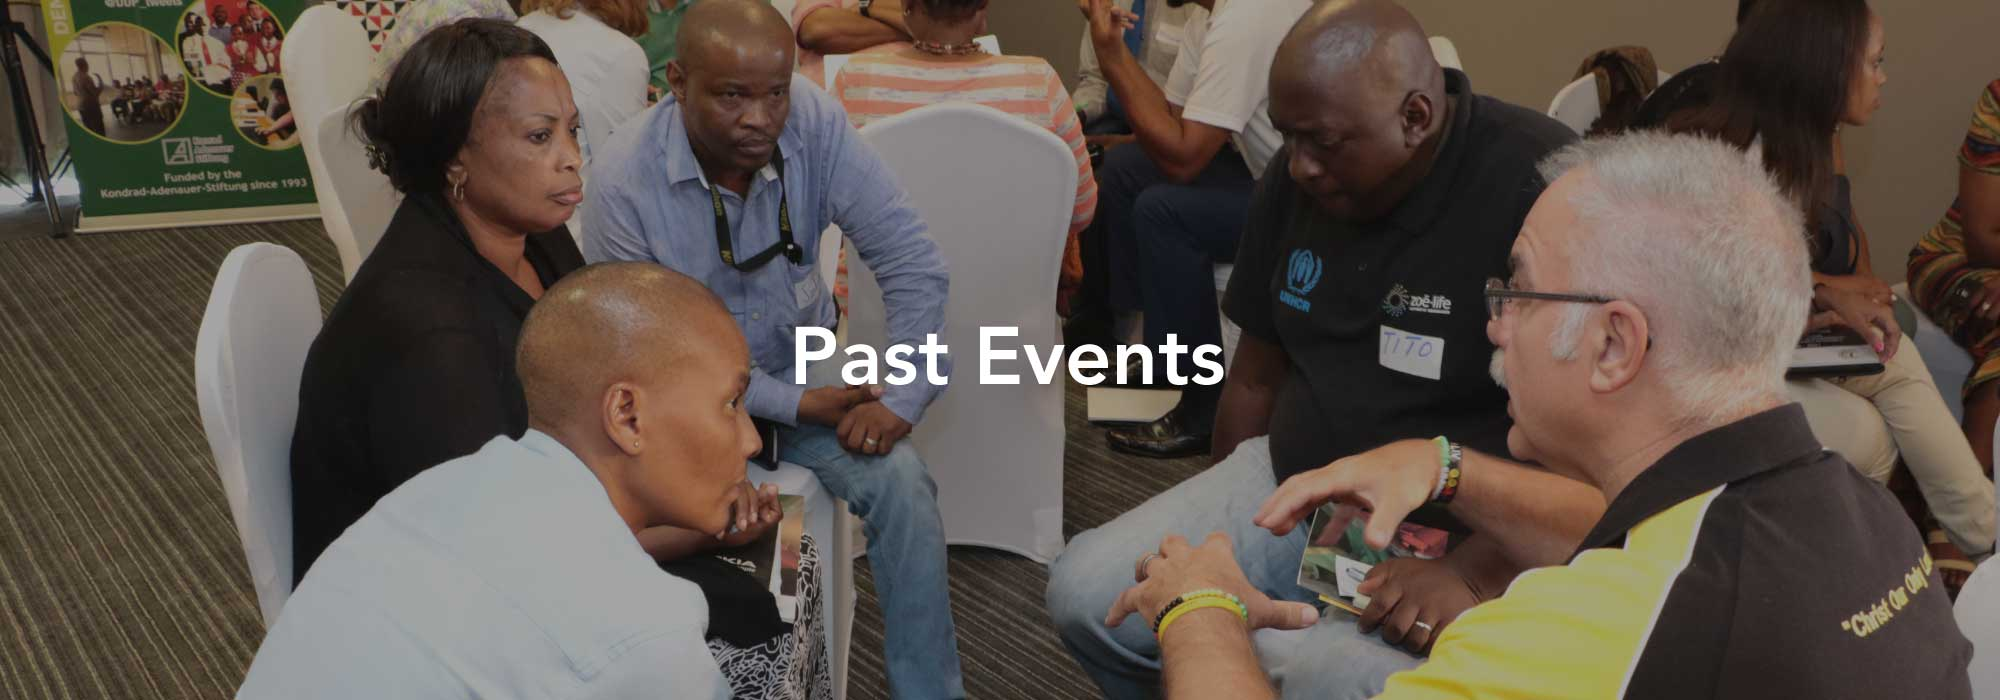 past-events-header